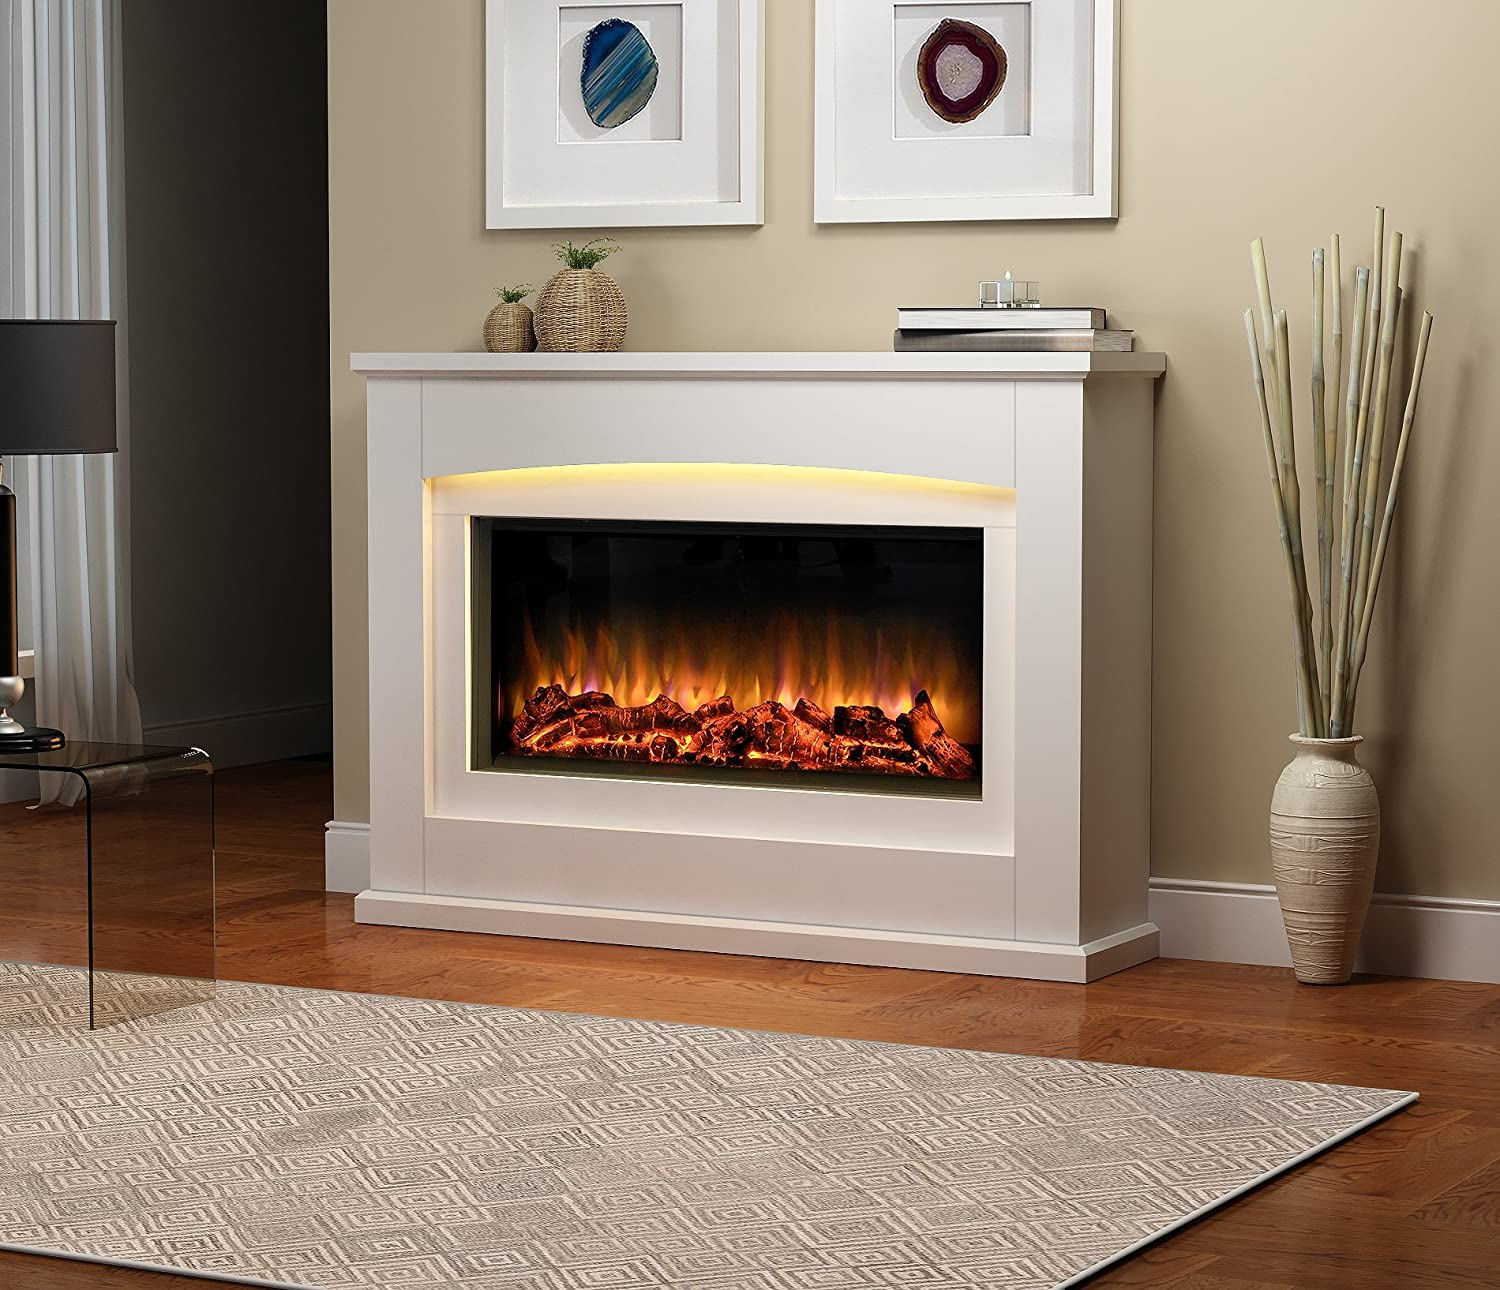 Top 10 Best Electric Fireplace Heater Reviews 2018 2019 On